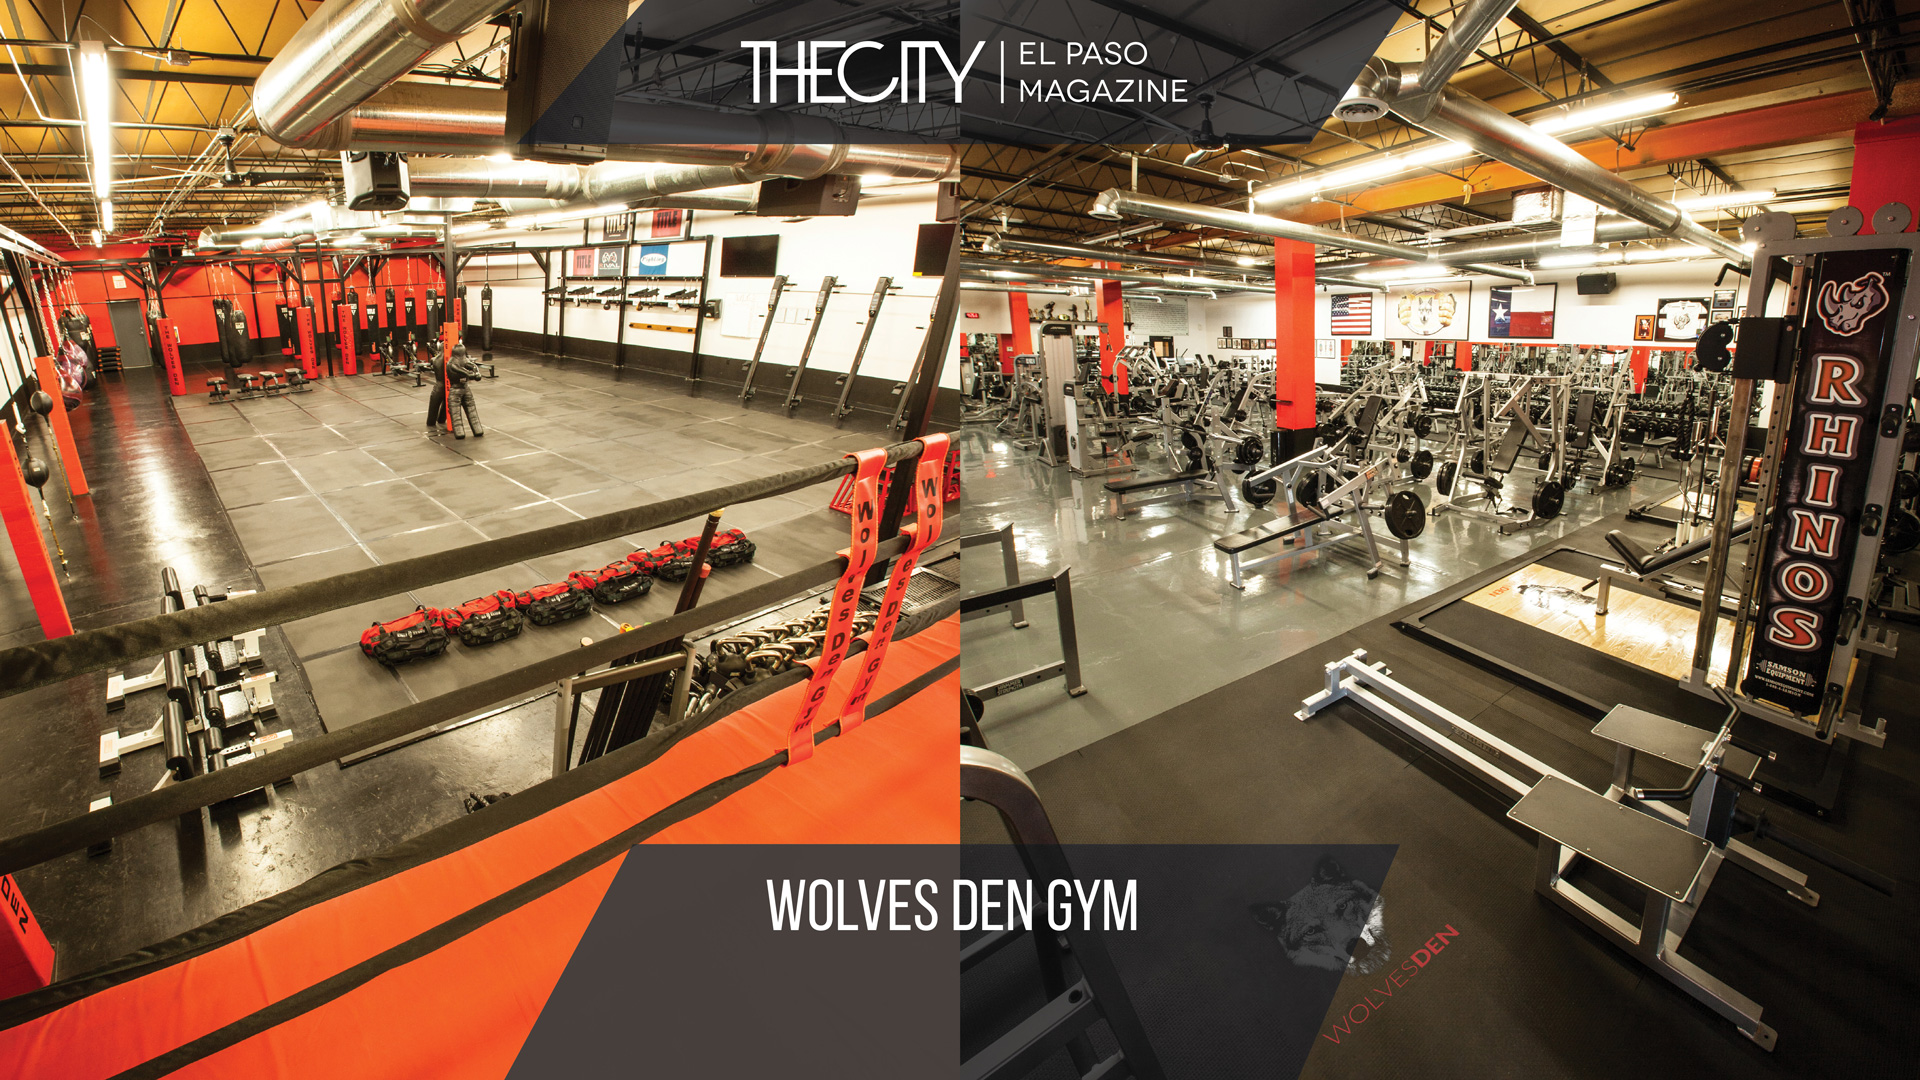 PERSONAL TRANSFORMATION: WOLVES DEN GYM